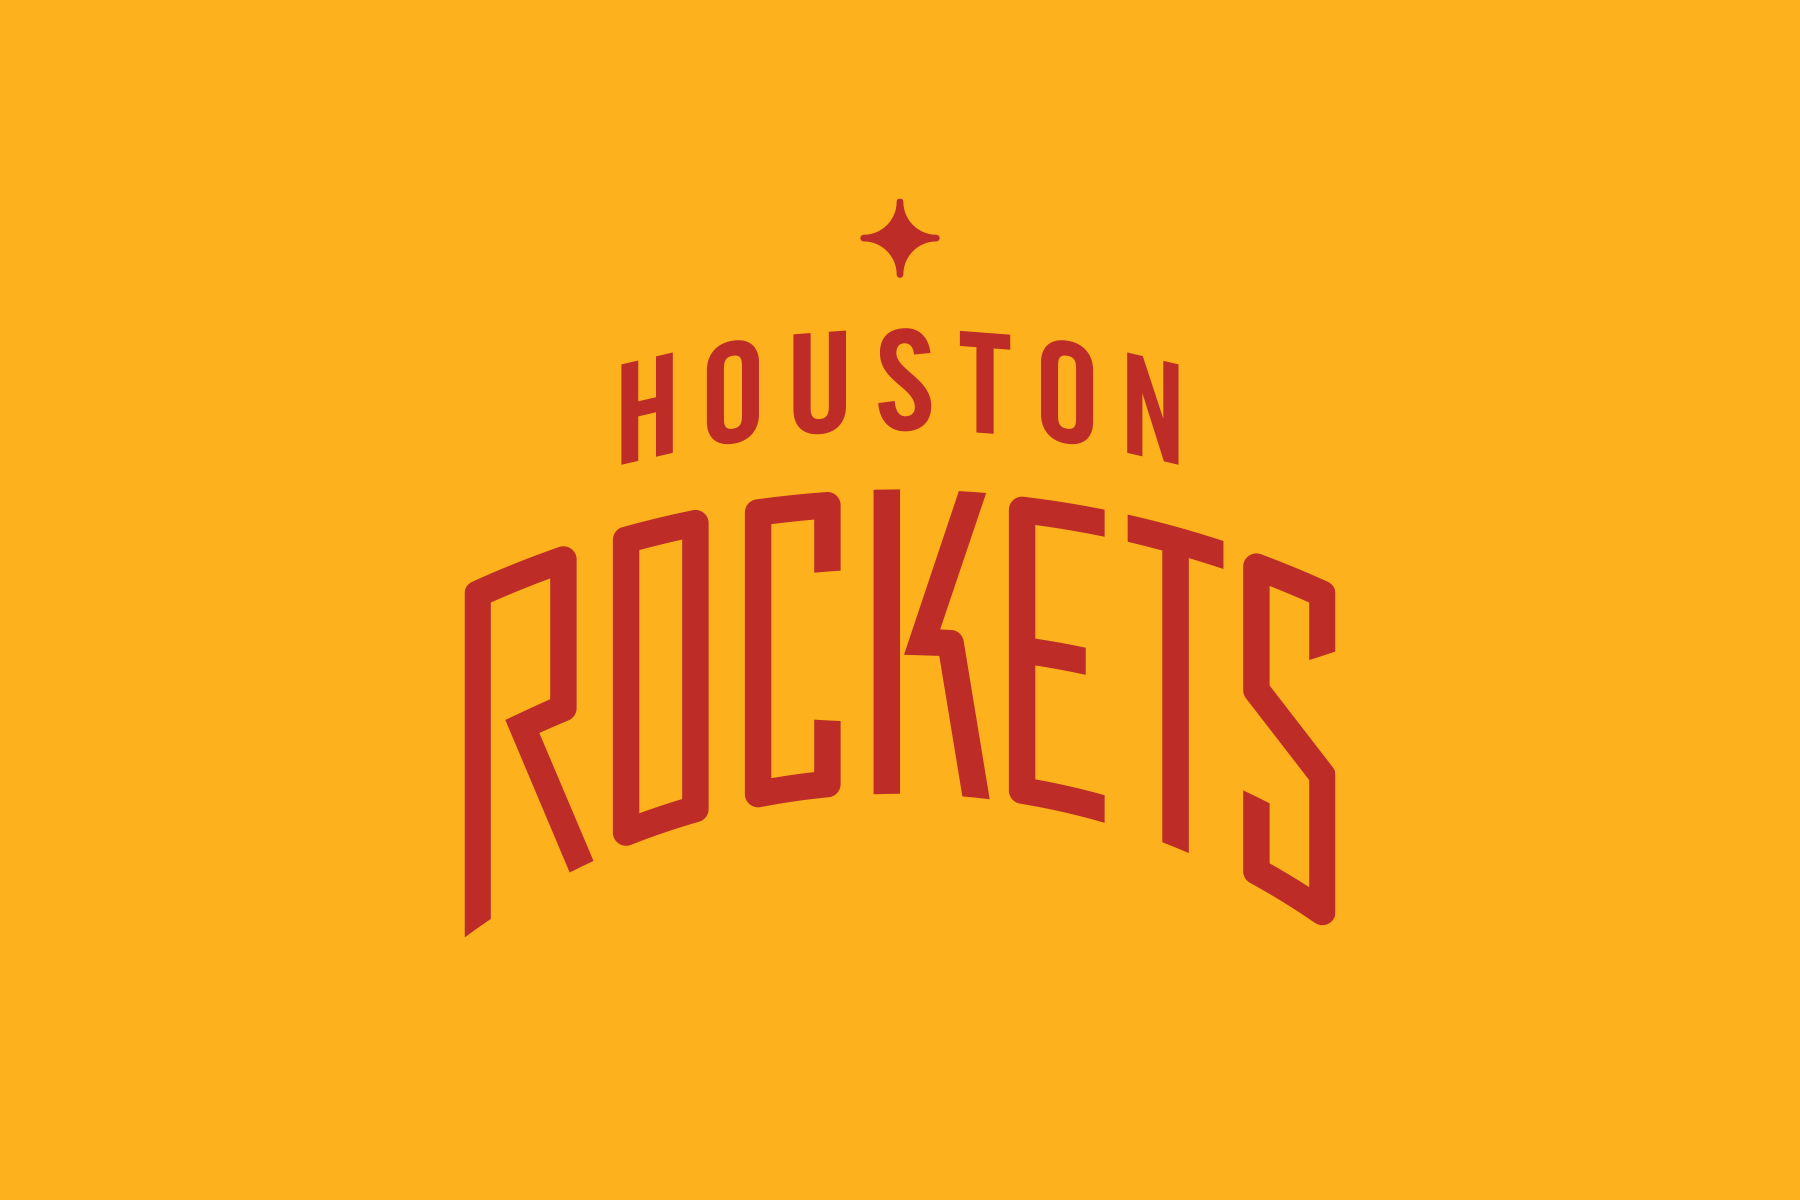 NBA Logo Redesigns: Houston Rockets - text lockup